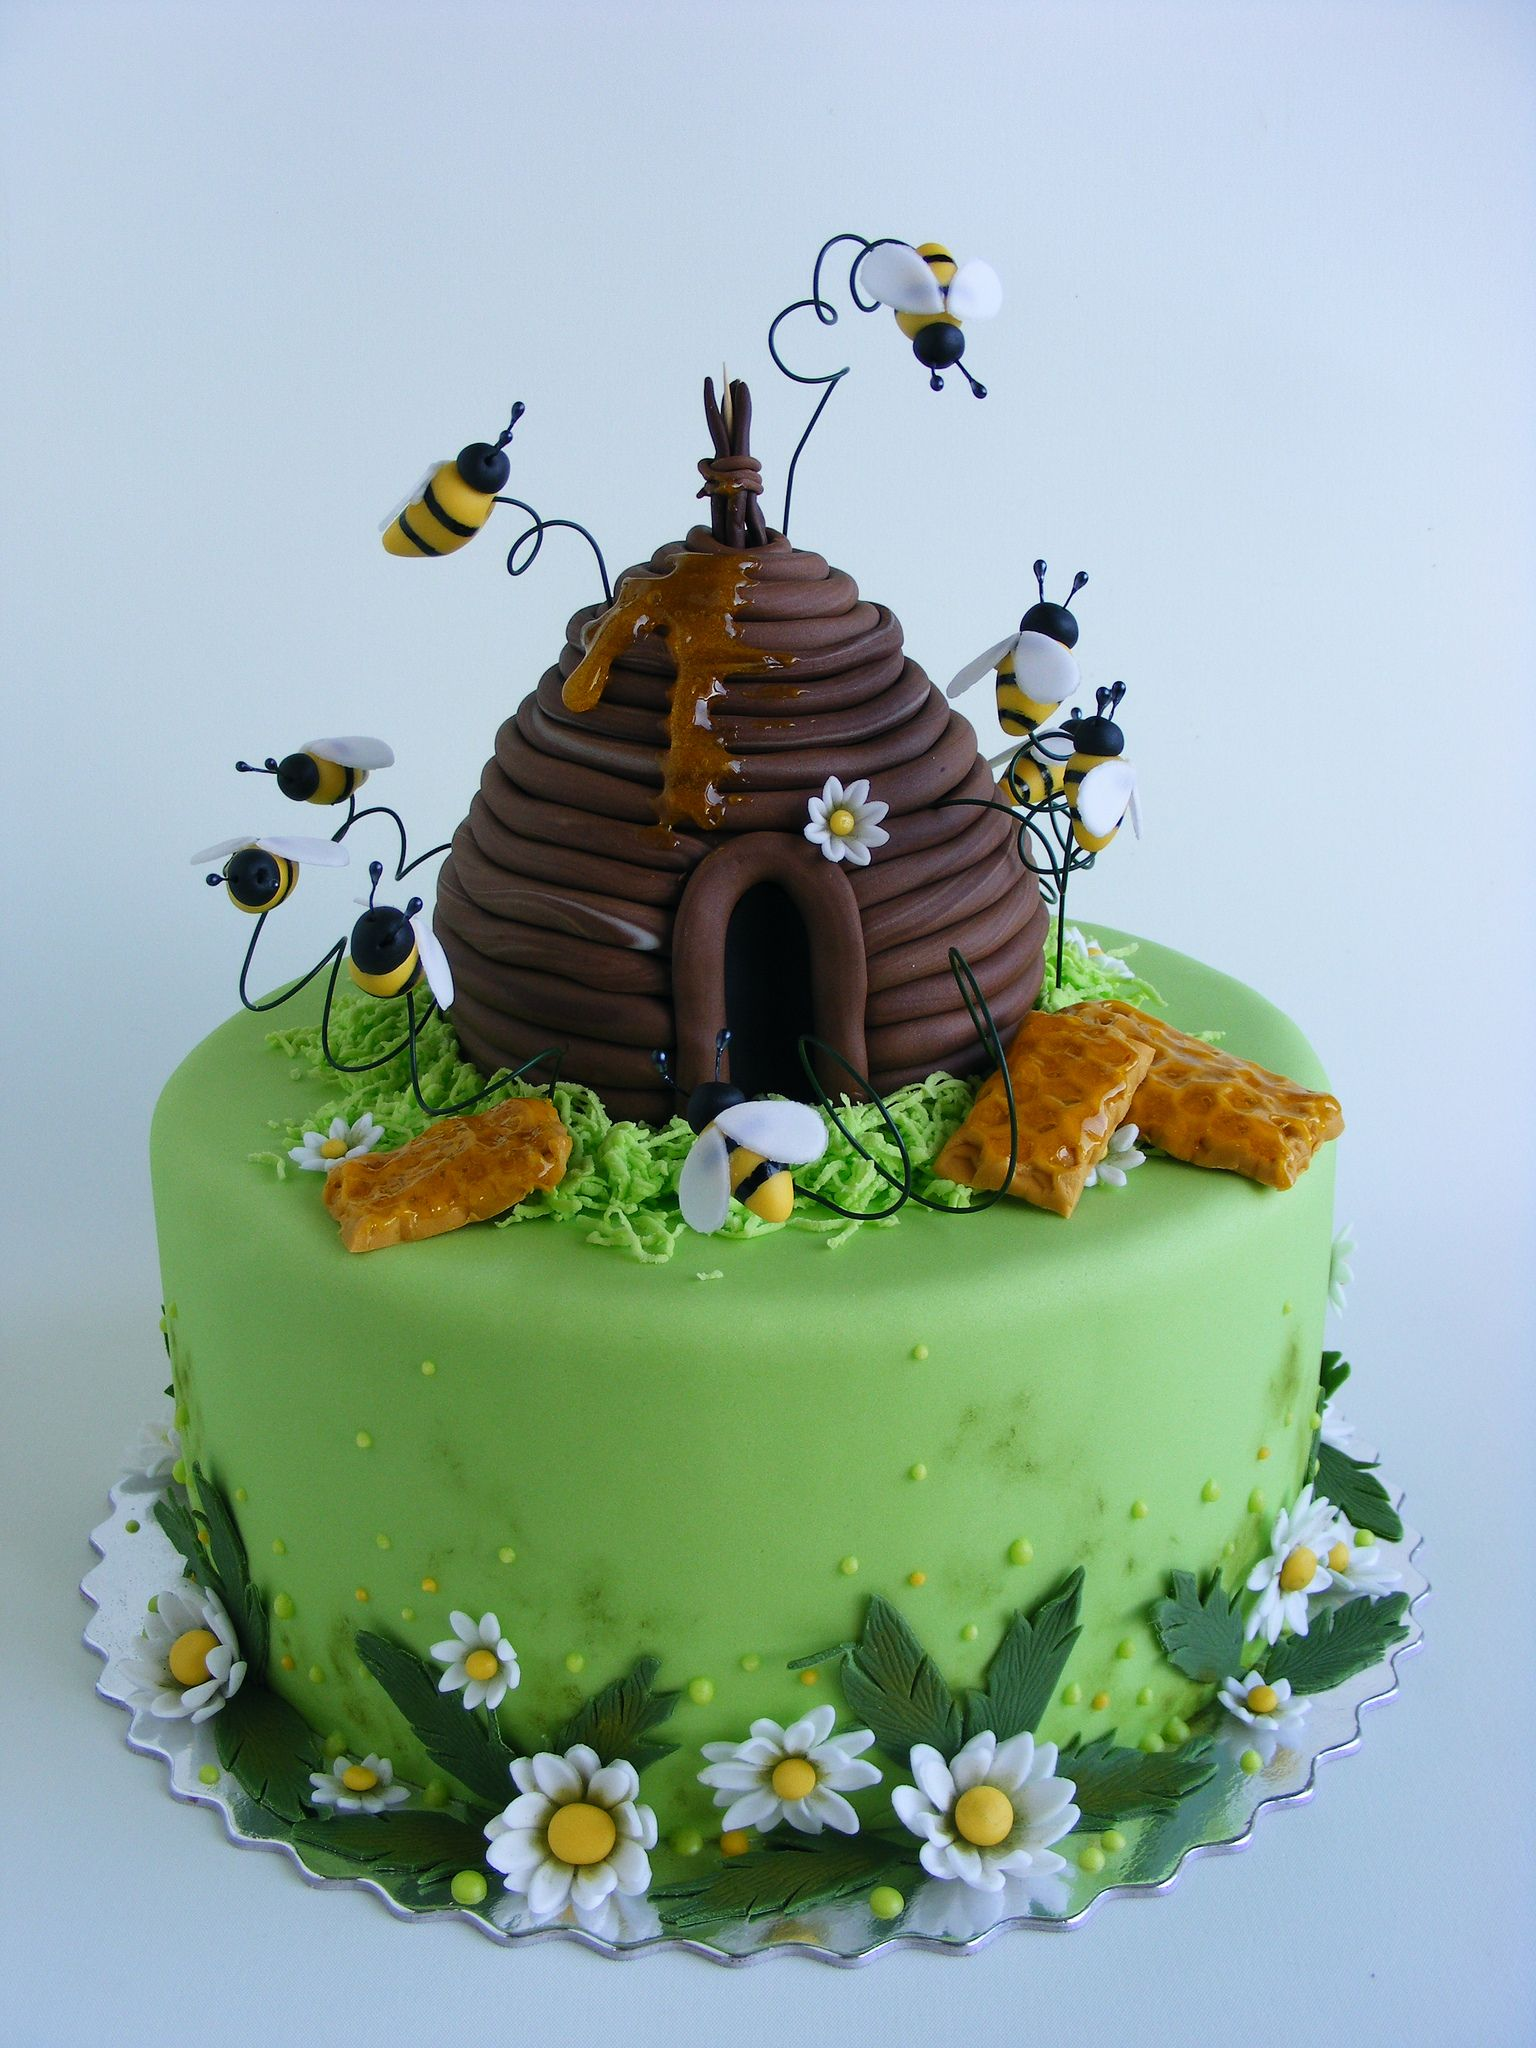 """https://flic.kr/p/e6wAUy 